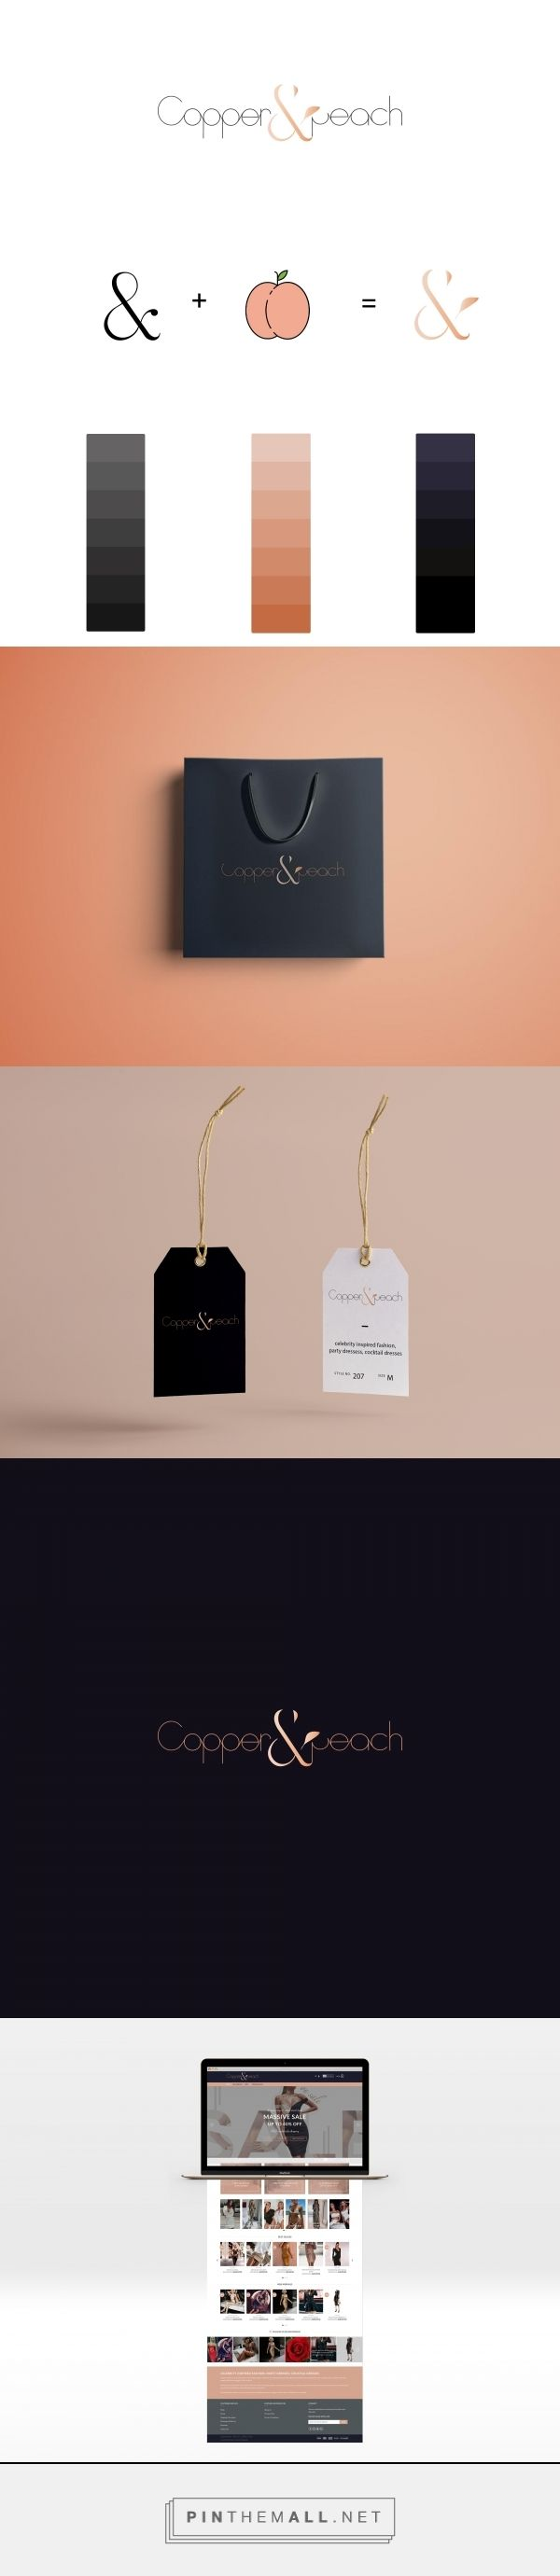 Chic, Modern, Sophisticated, Upscaled and Luxe for Copper and Peach Australian online boutique | Identity Logo, Web Design, Graphics, Branding and Creative Direction by Studio H²o @studio_h2o #branding #graphicdesign #logo #logodesign #fashionlogo #webdesign #brandidentity